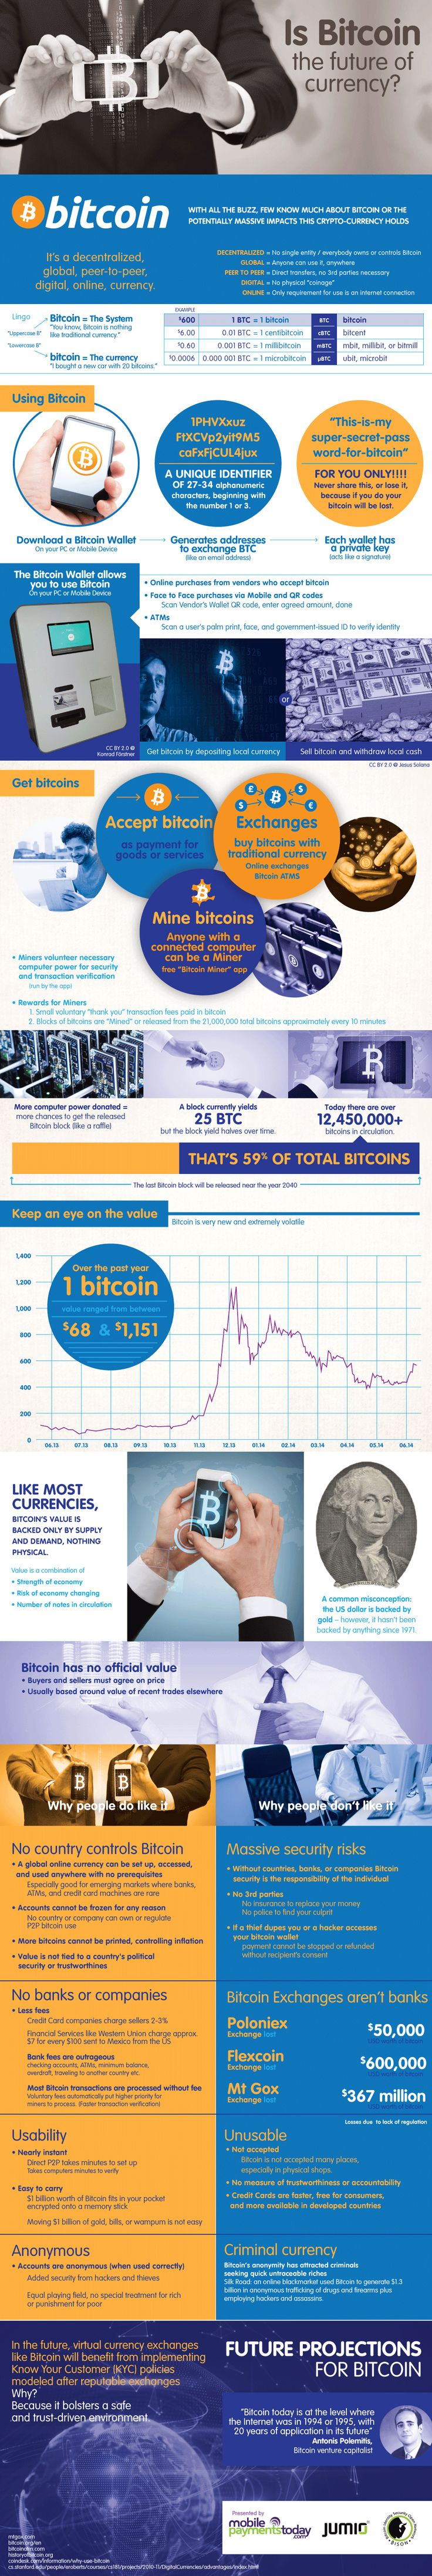 Is #Bitcoin The Future of Currency? » http://www.mobilepaymentstoday.com/images/is-bitcoin-the-future-of-currency.png Advanced Mining Technologies Inc. (AMT Miners) www.amtminers.com